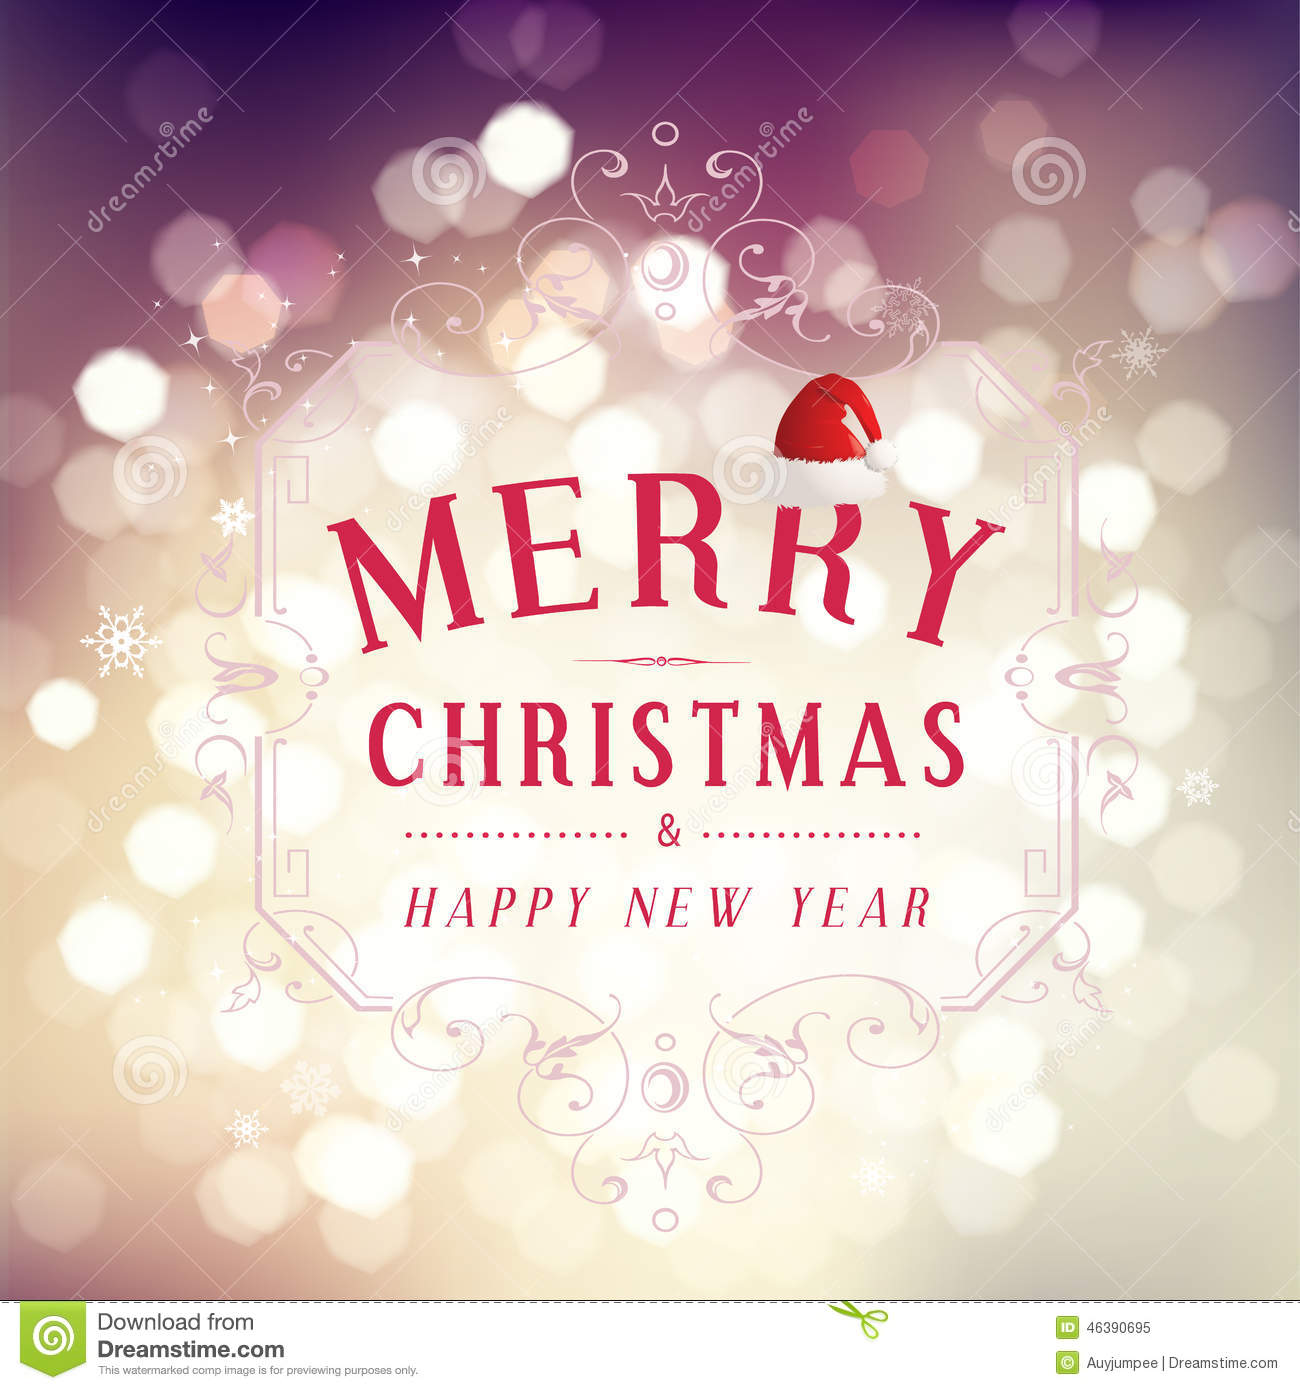 Merry Christmas and Happy New Year greeting card festive inscription with ornamental elements on bokeh vintage background, vector